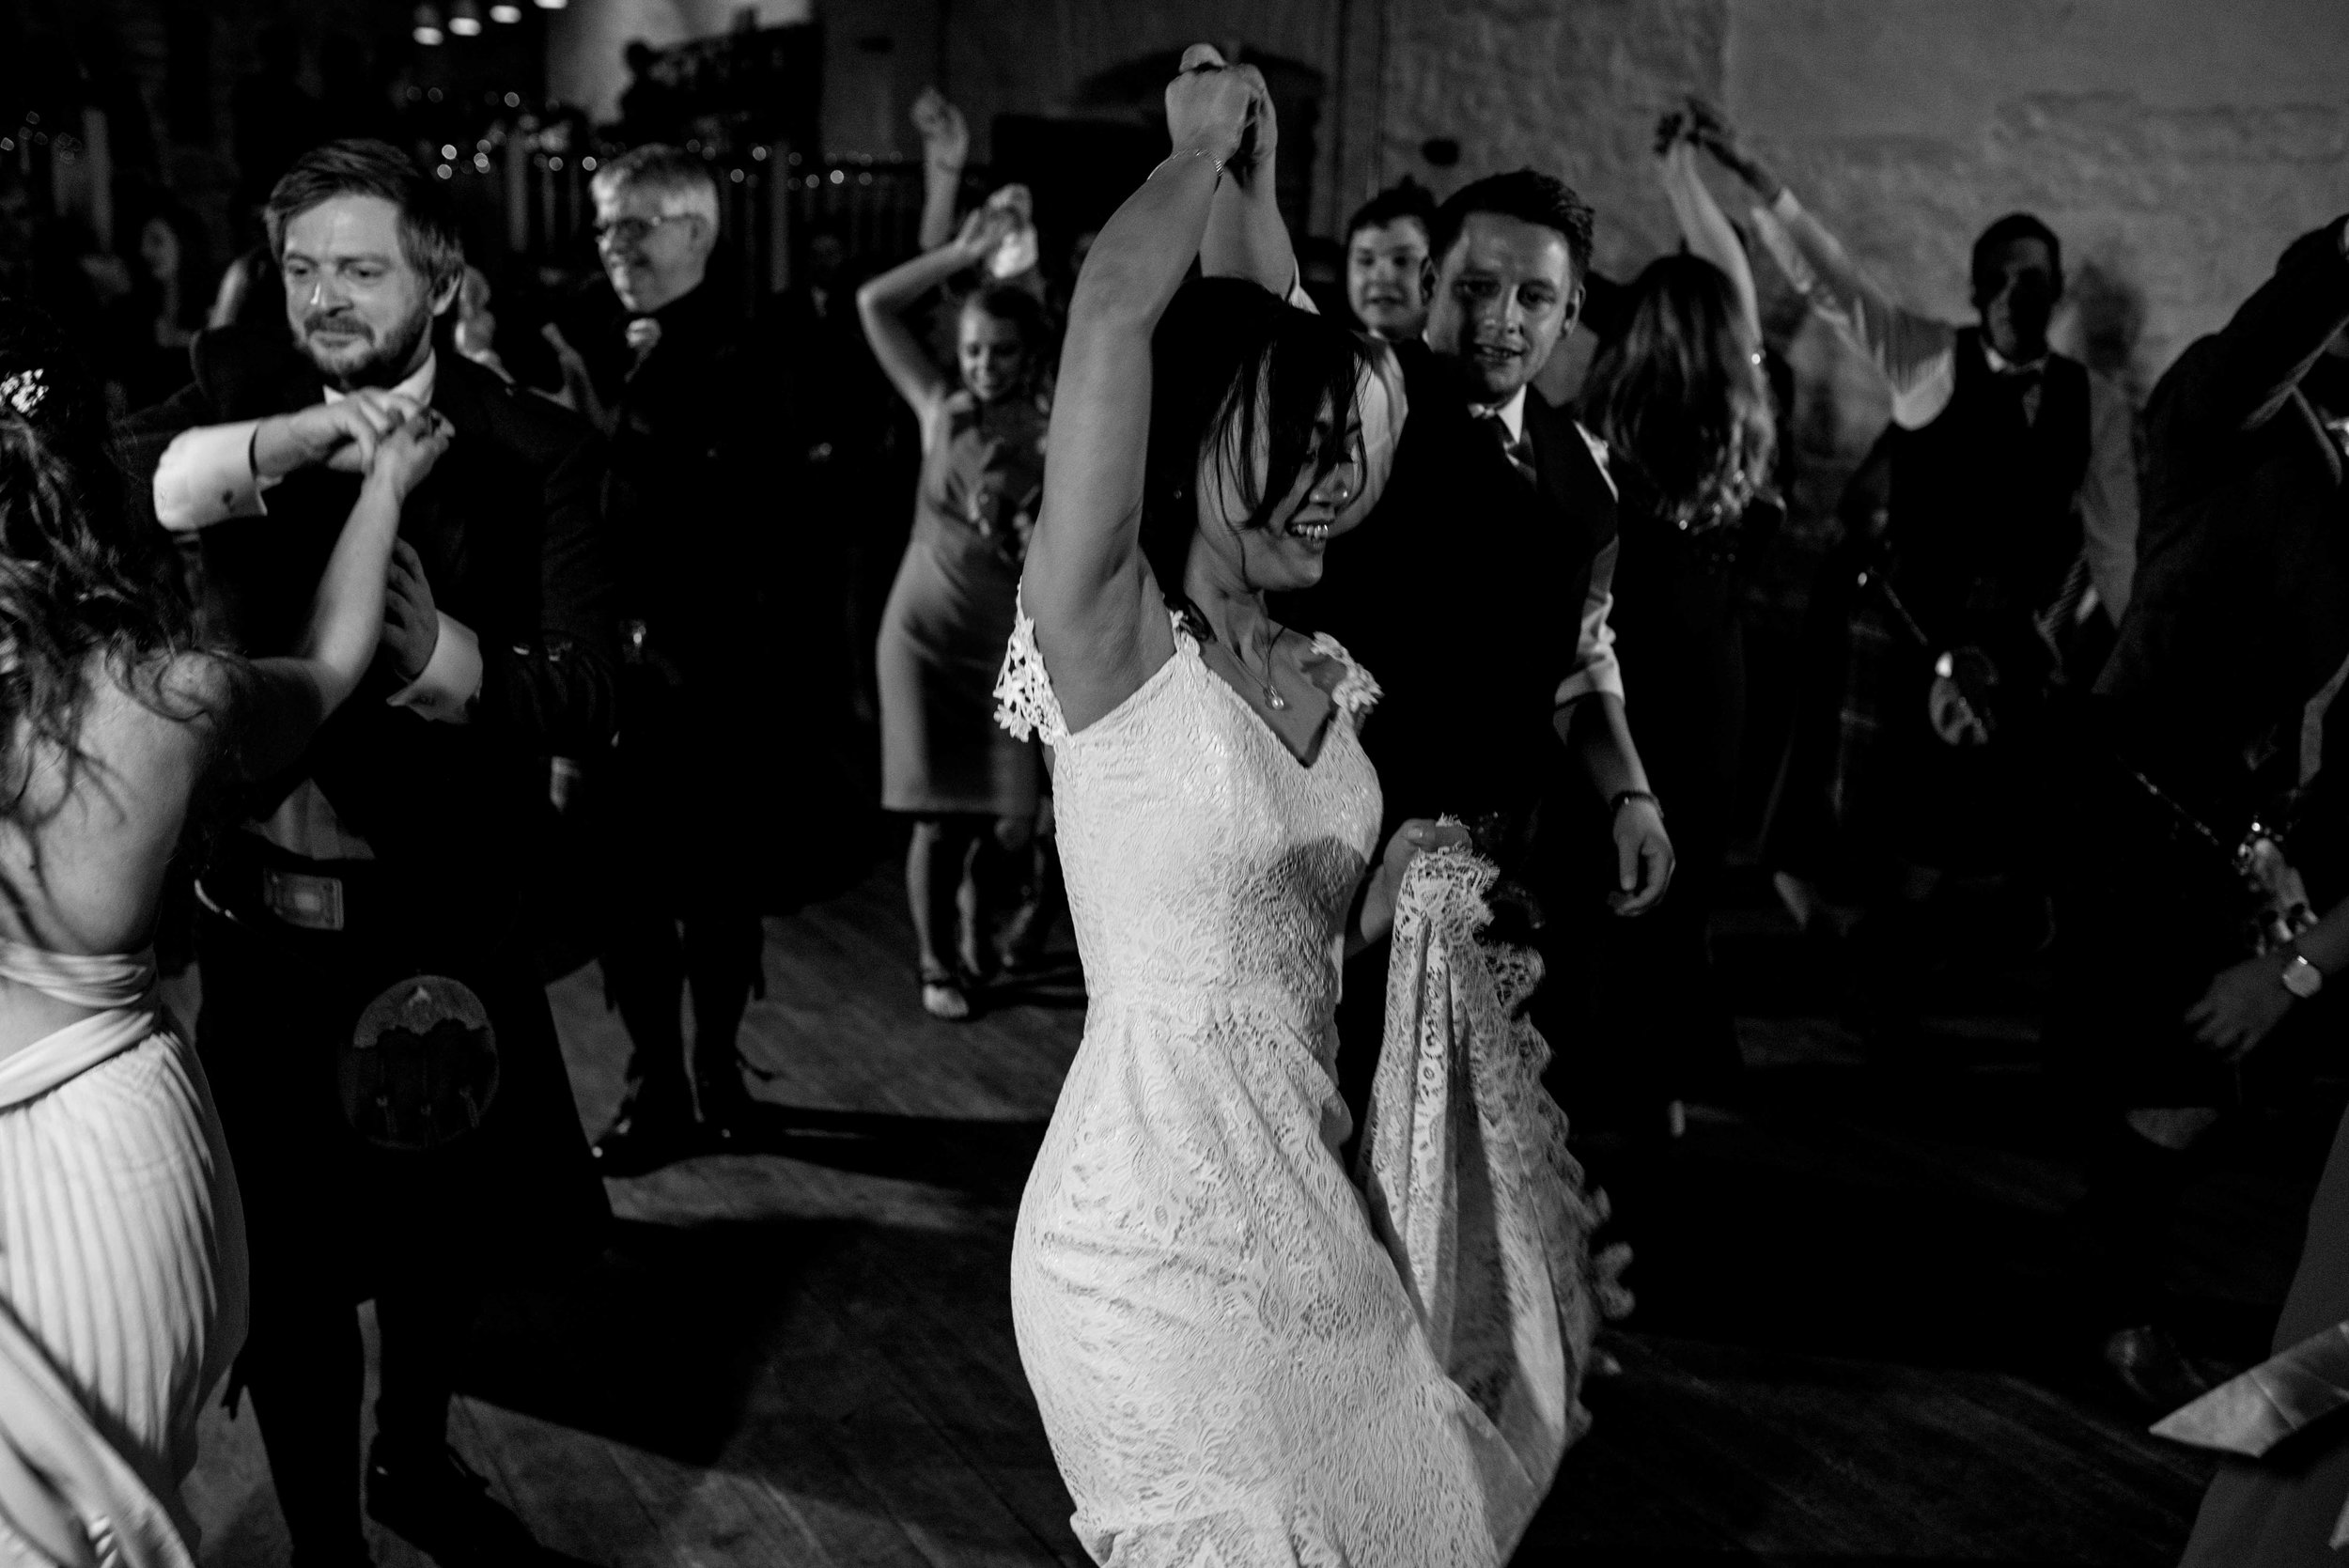 the bride raises her arms as she dances